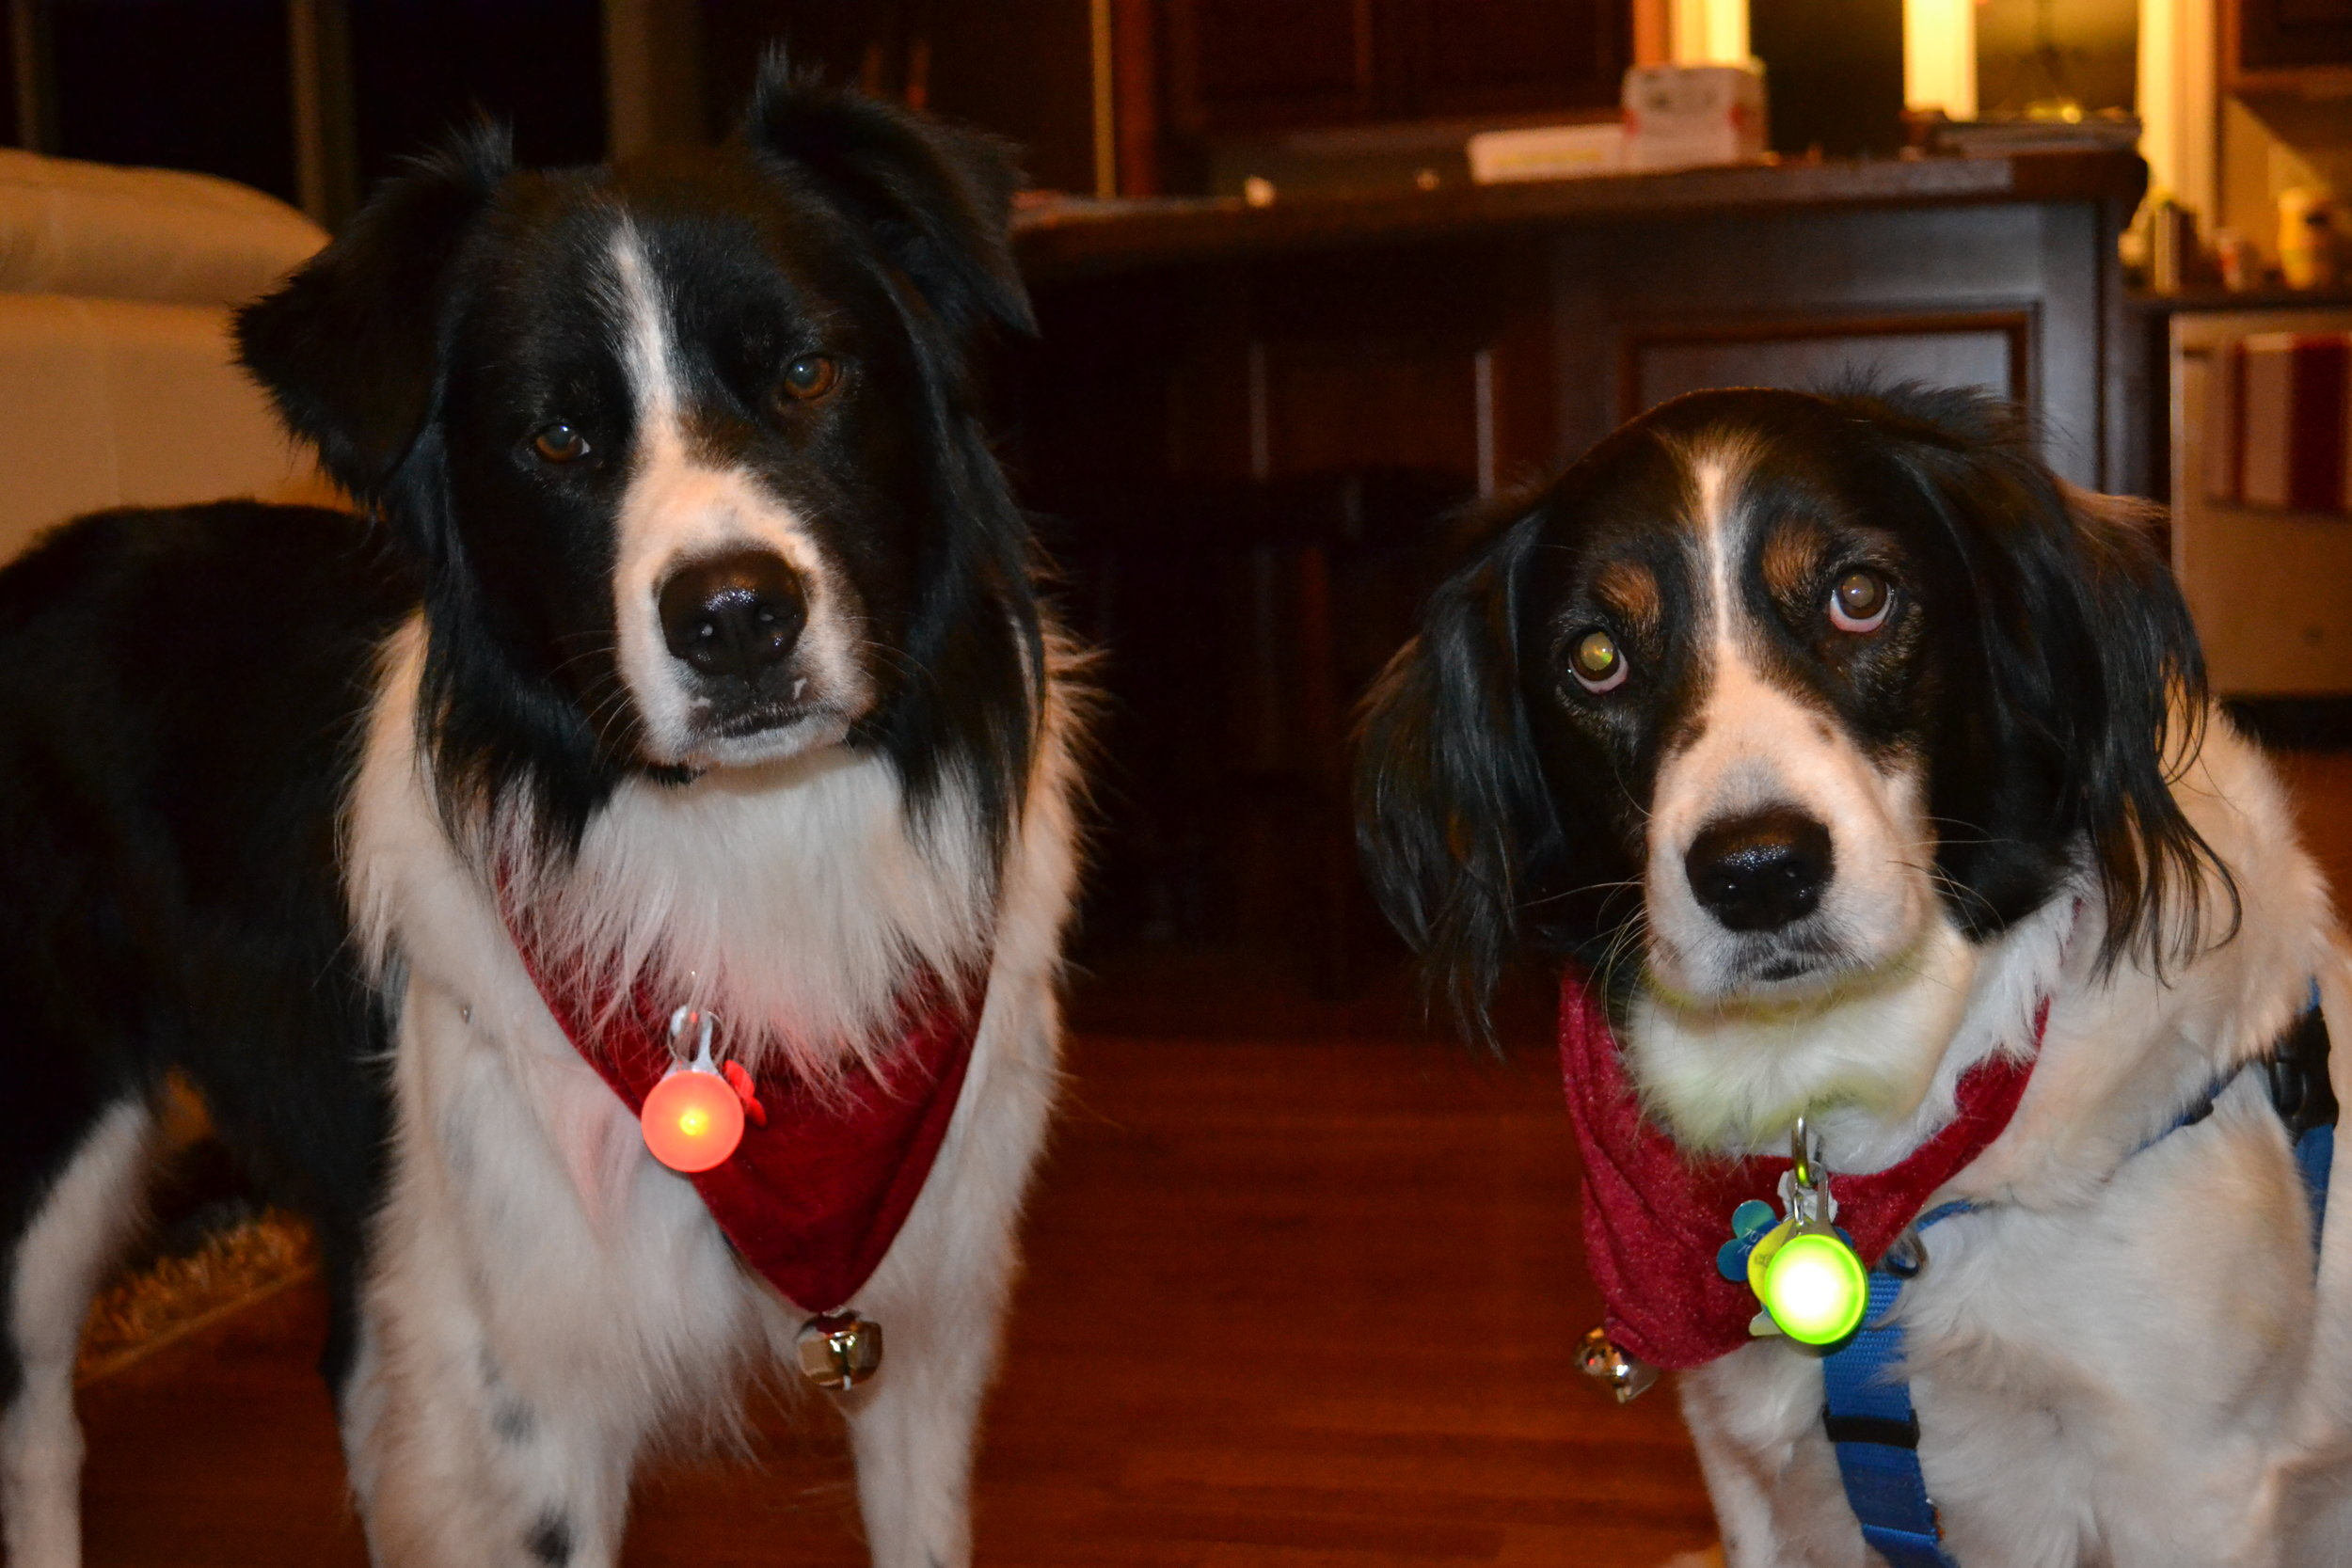 These furry faces bring great enjoyment and balance to my life (and they clearly took this picture VERY seriously...)!